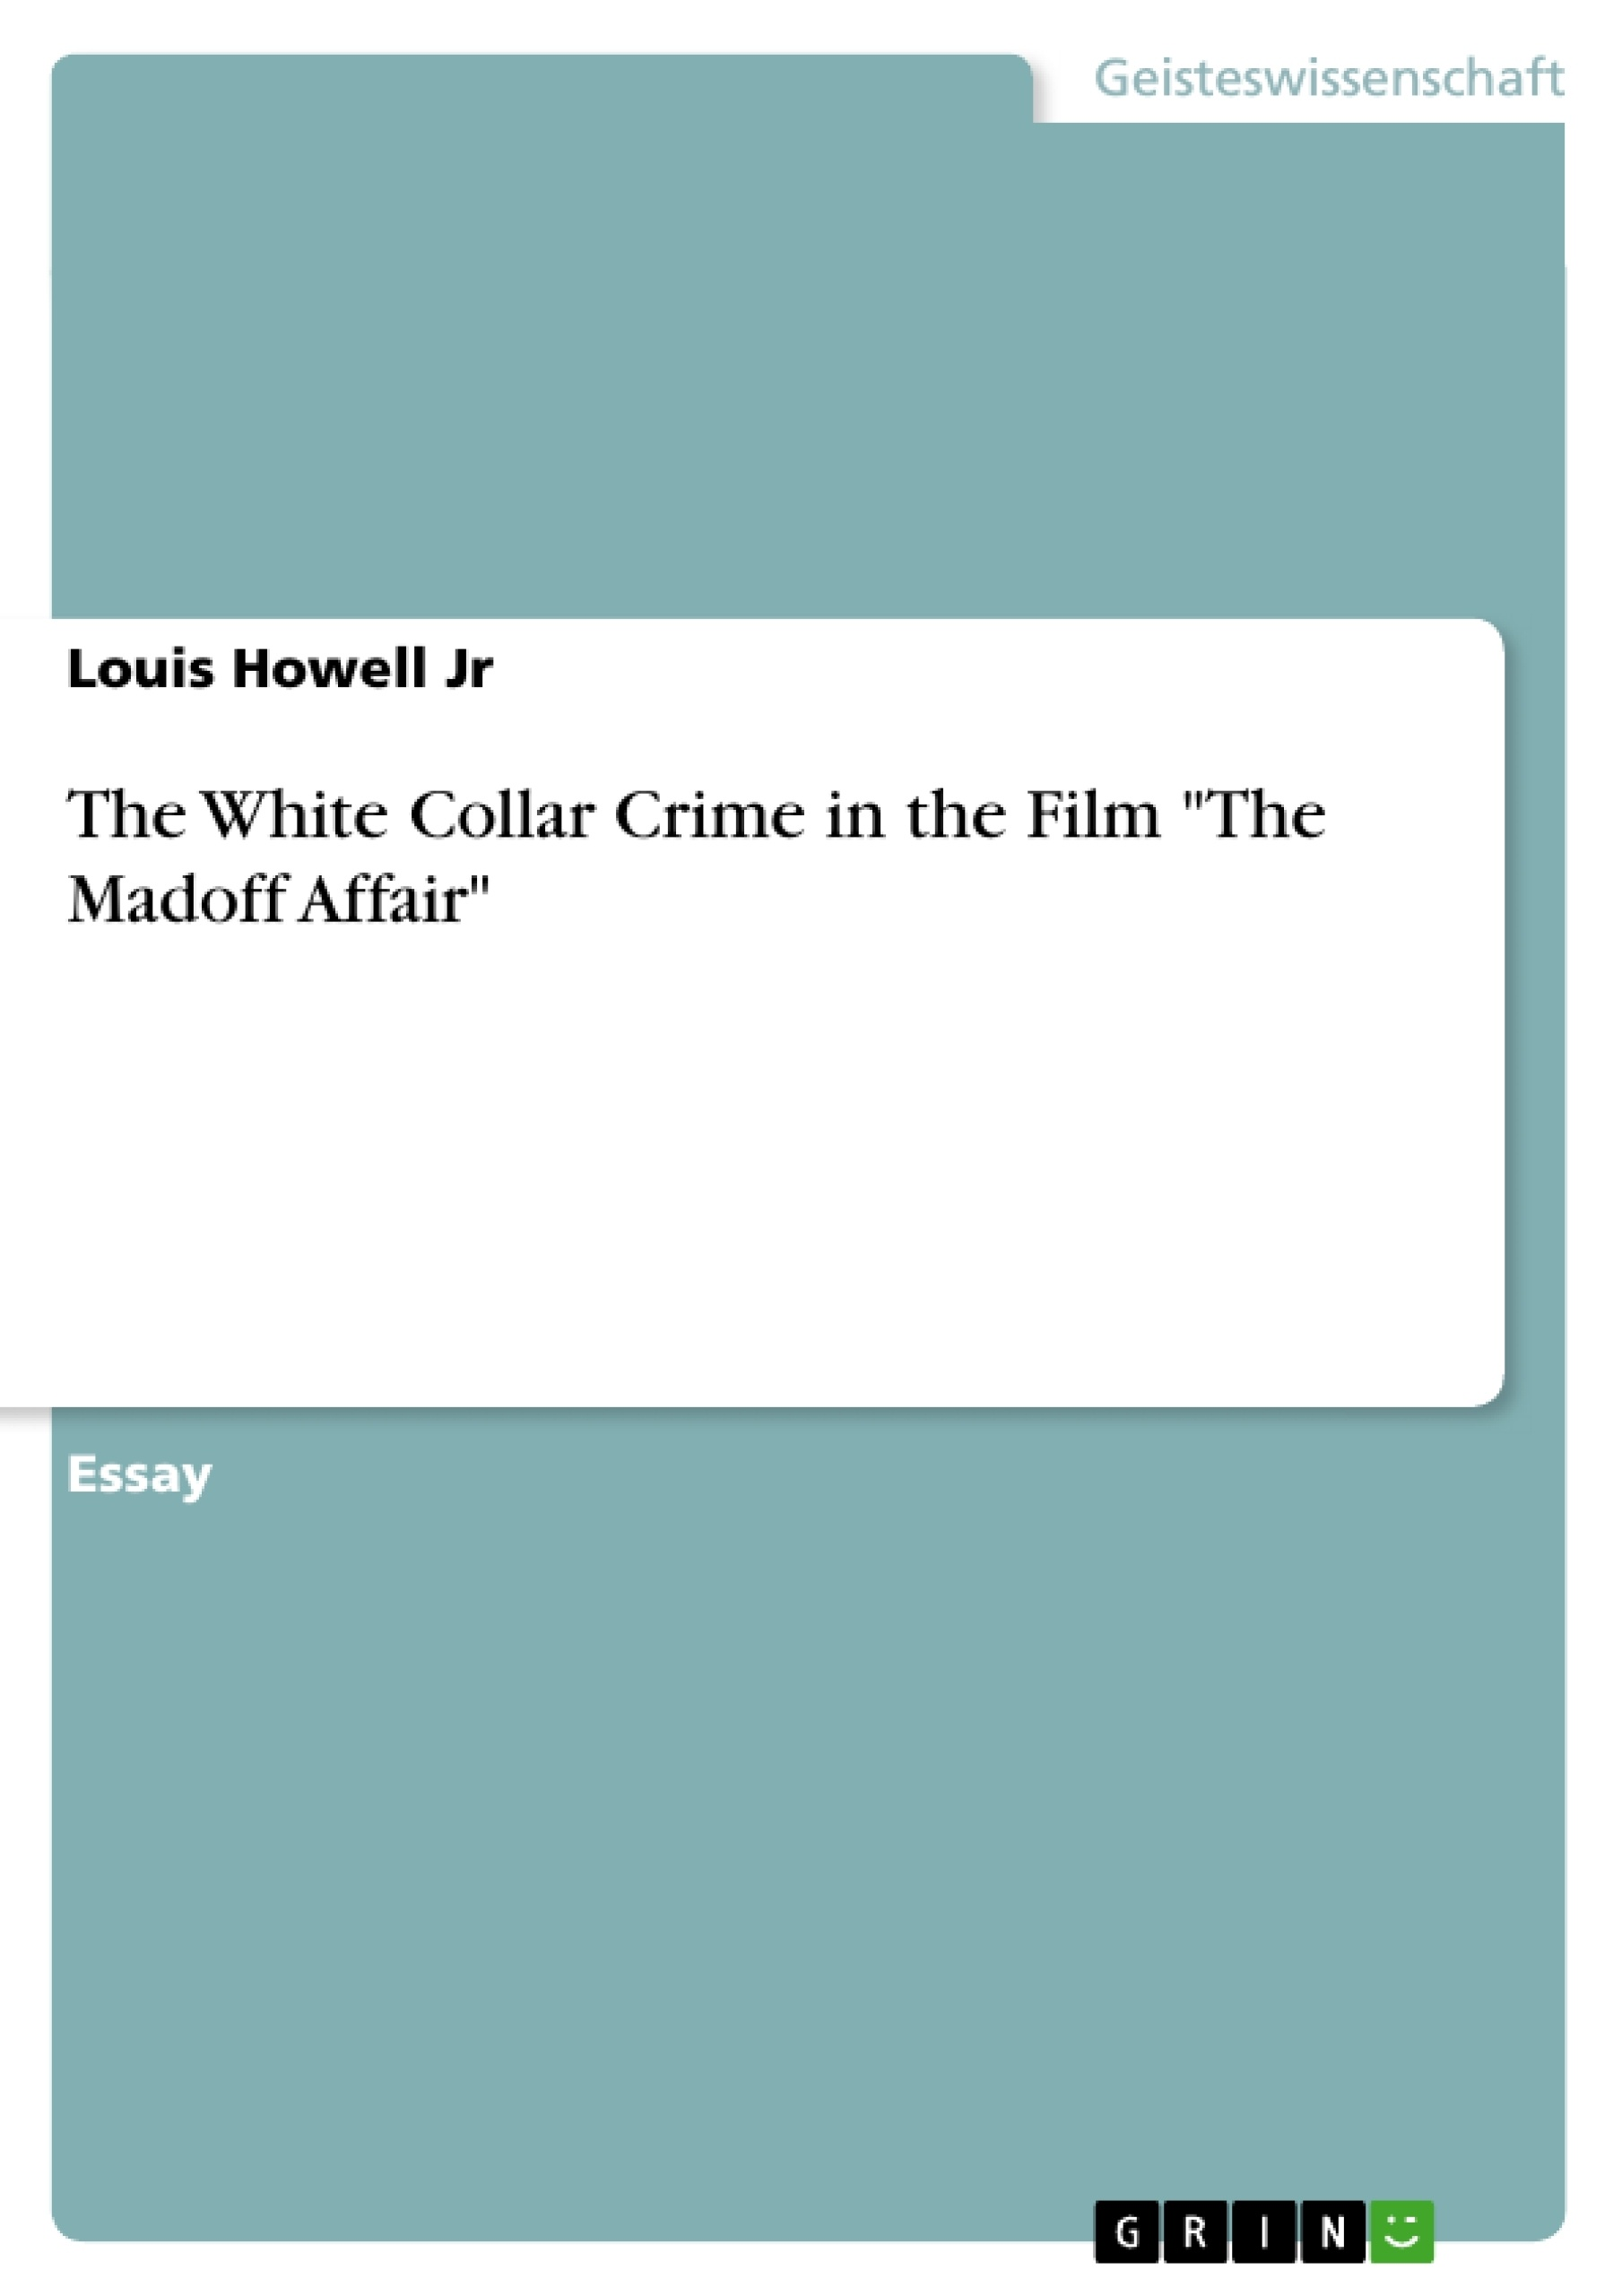 the white collar crime in the film the madoff affair the white collar crime in the film the madoff affair masterarbeit hausarbeit bachelorarbeit veratildeparaffentlichen